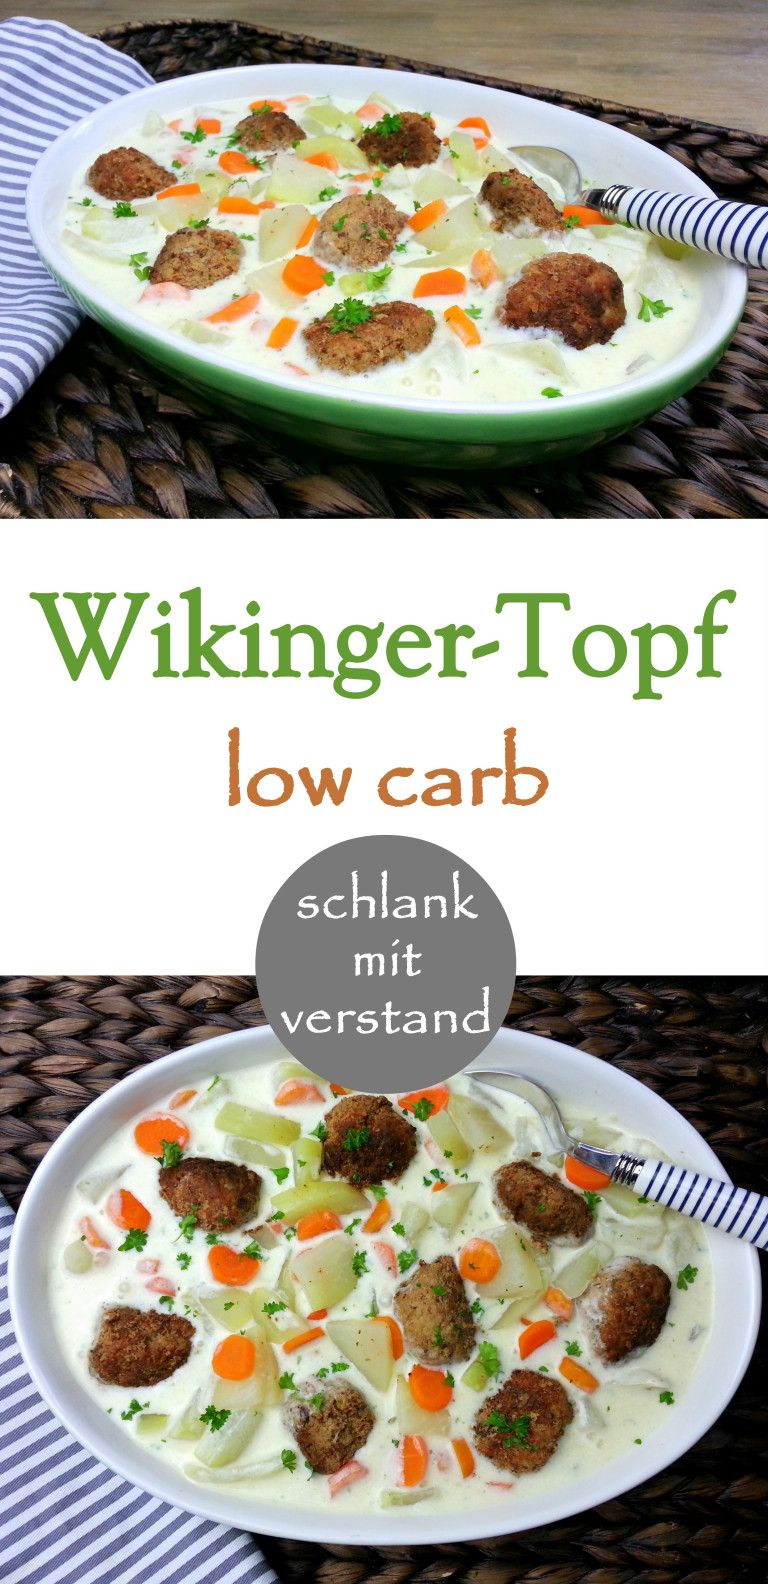 Photo of Wikinger-Topf low carb